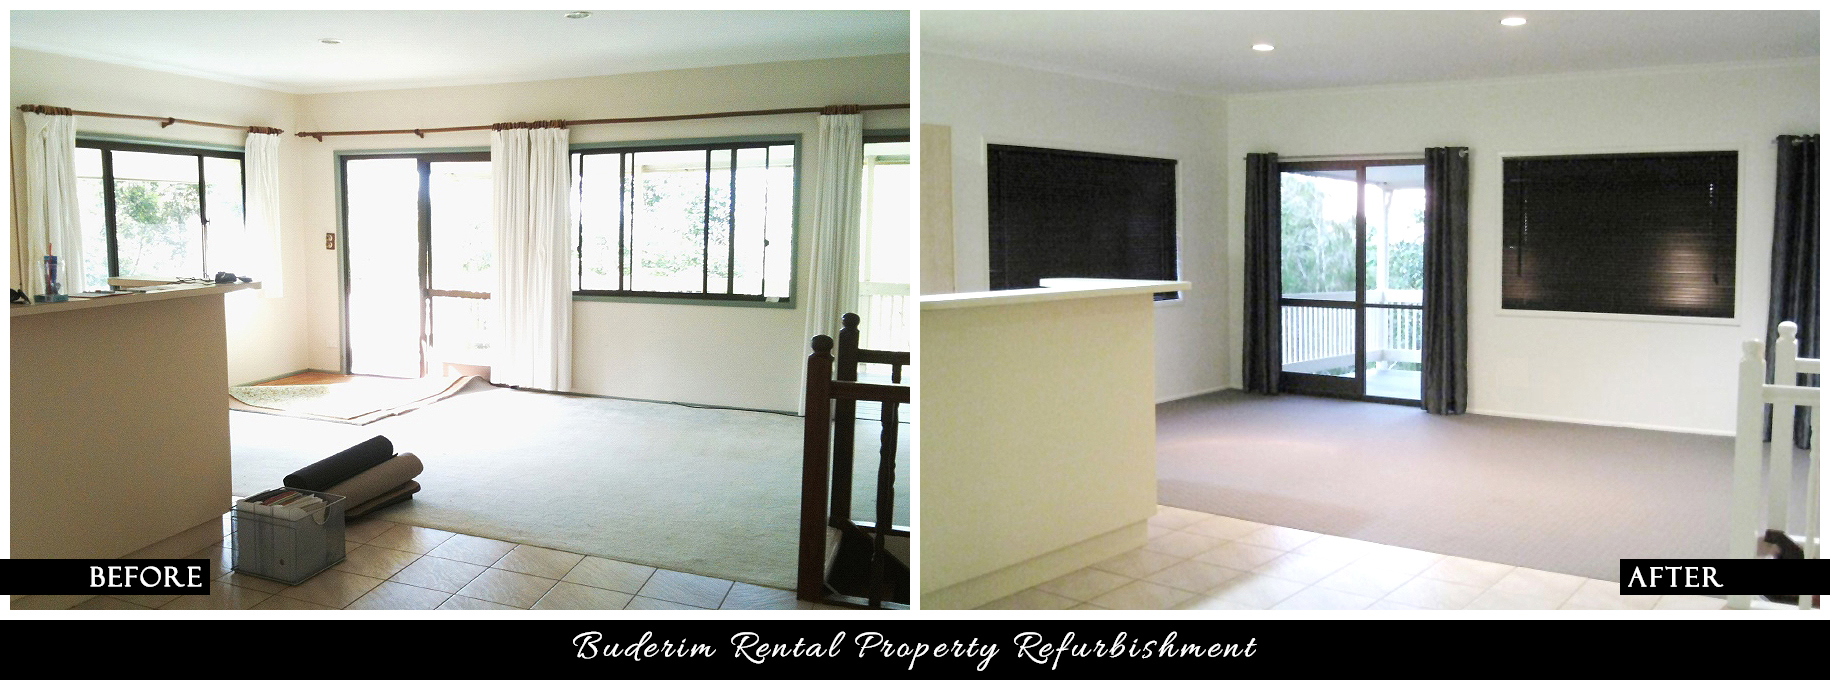 CANDY & CO. - BUDERIM RENTAL PROPERTY Before & After - Lounge